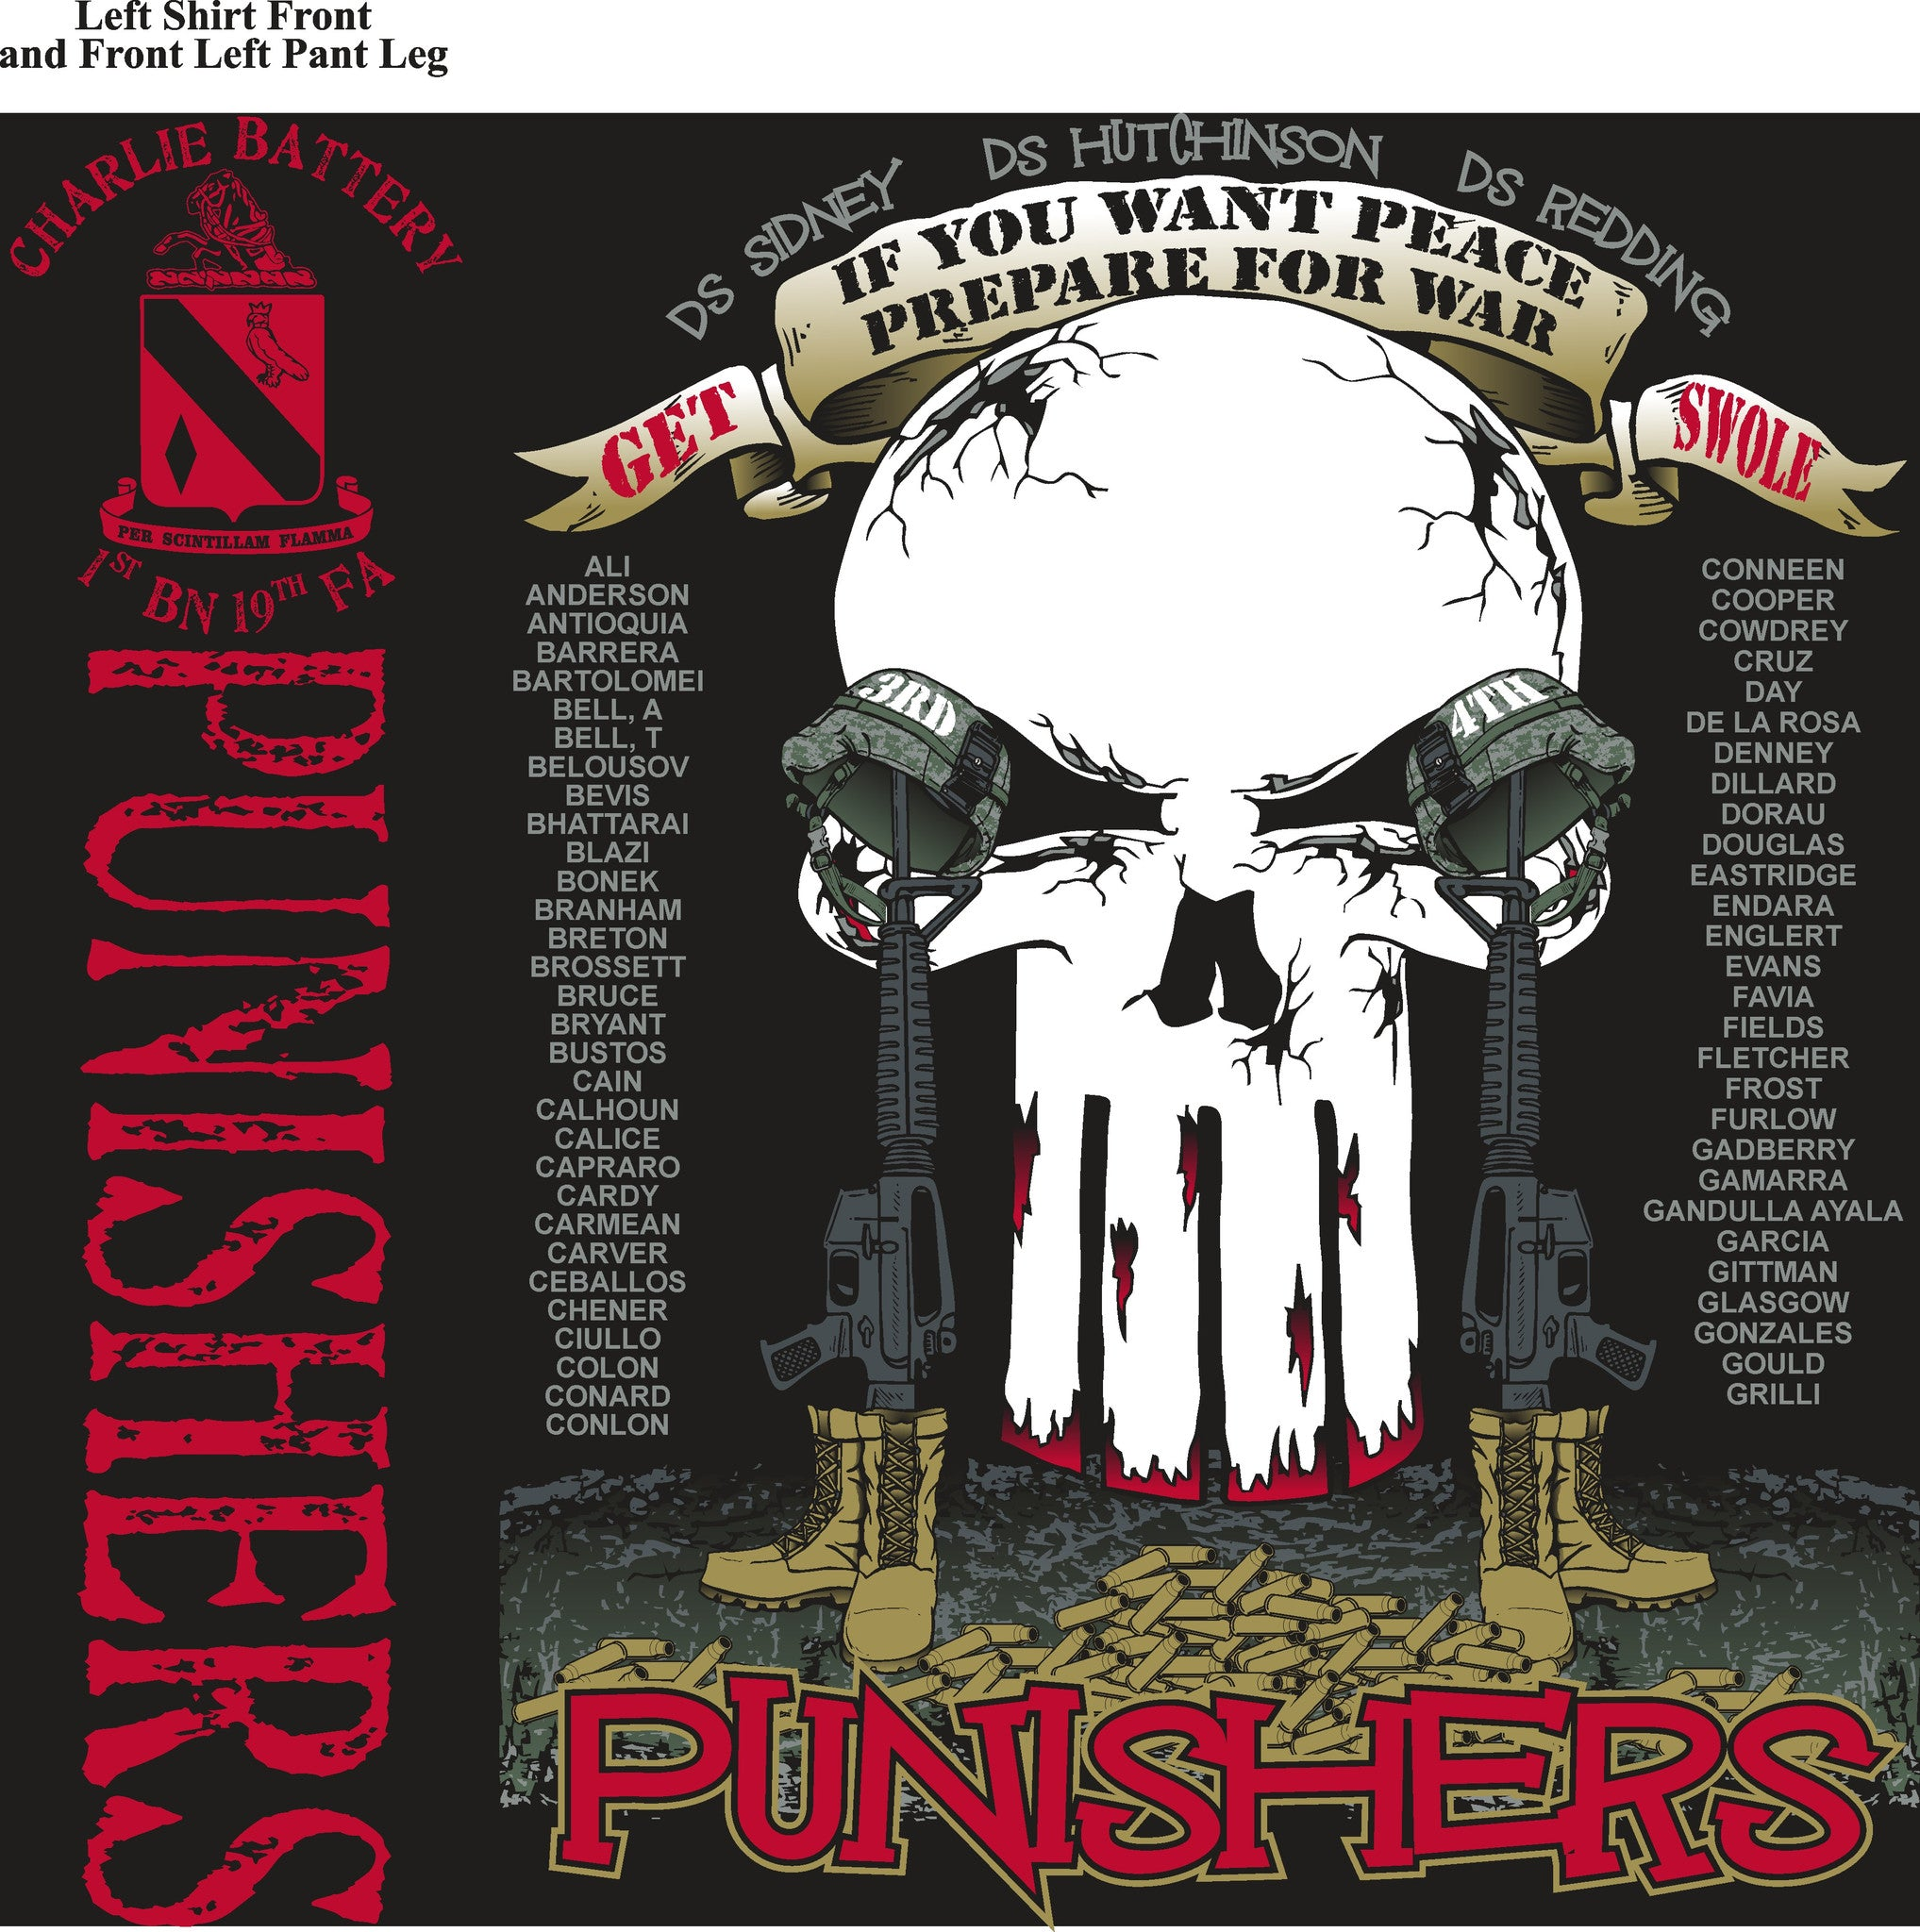 Platoon Shirts (digital) CHARLIE 1st 19th PUNISHERS MAY 2015